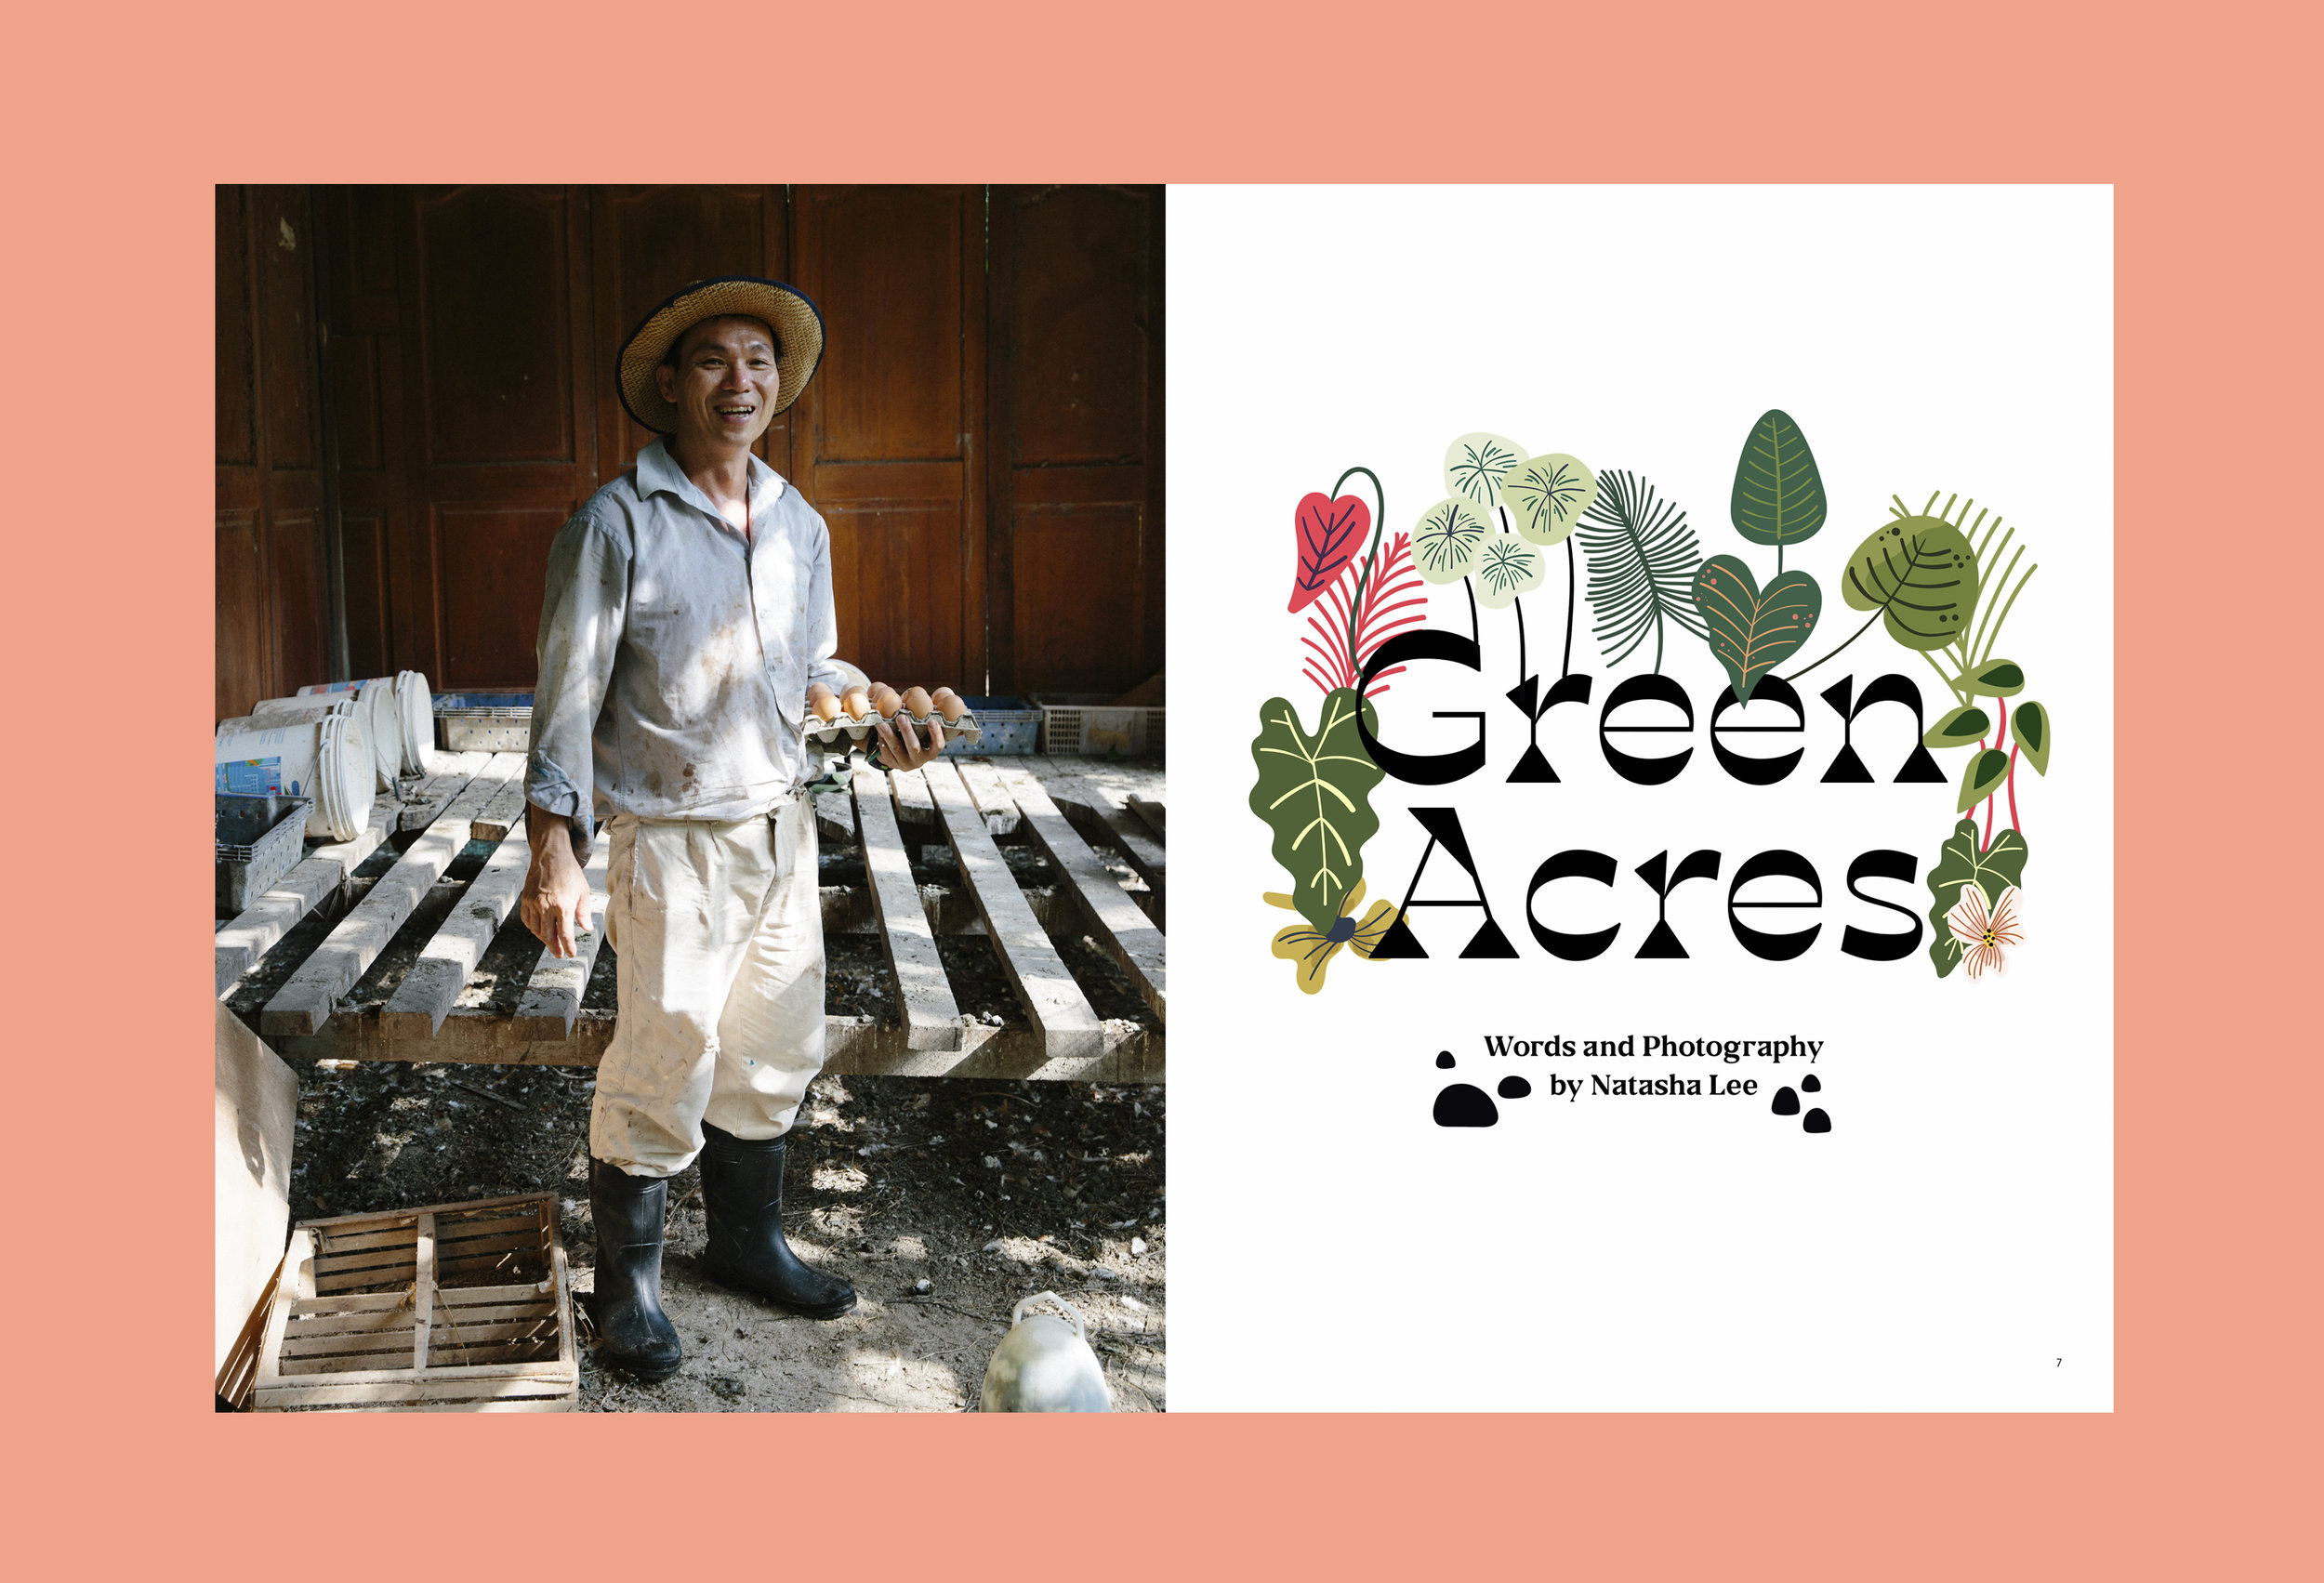 Green Acres from the Nature Issue